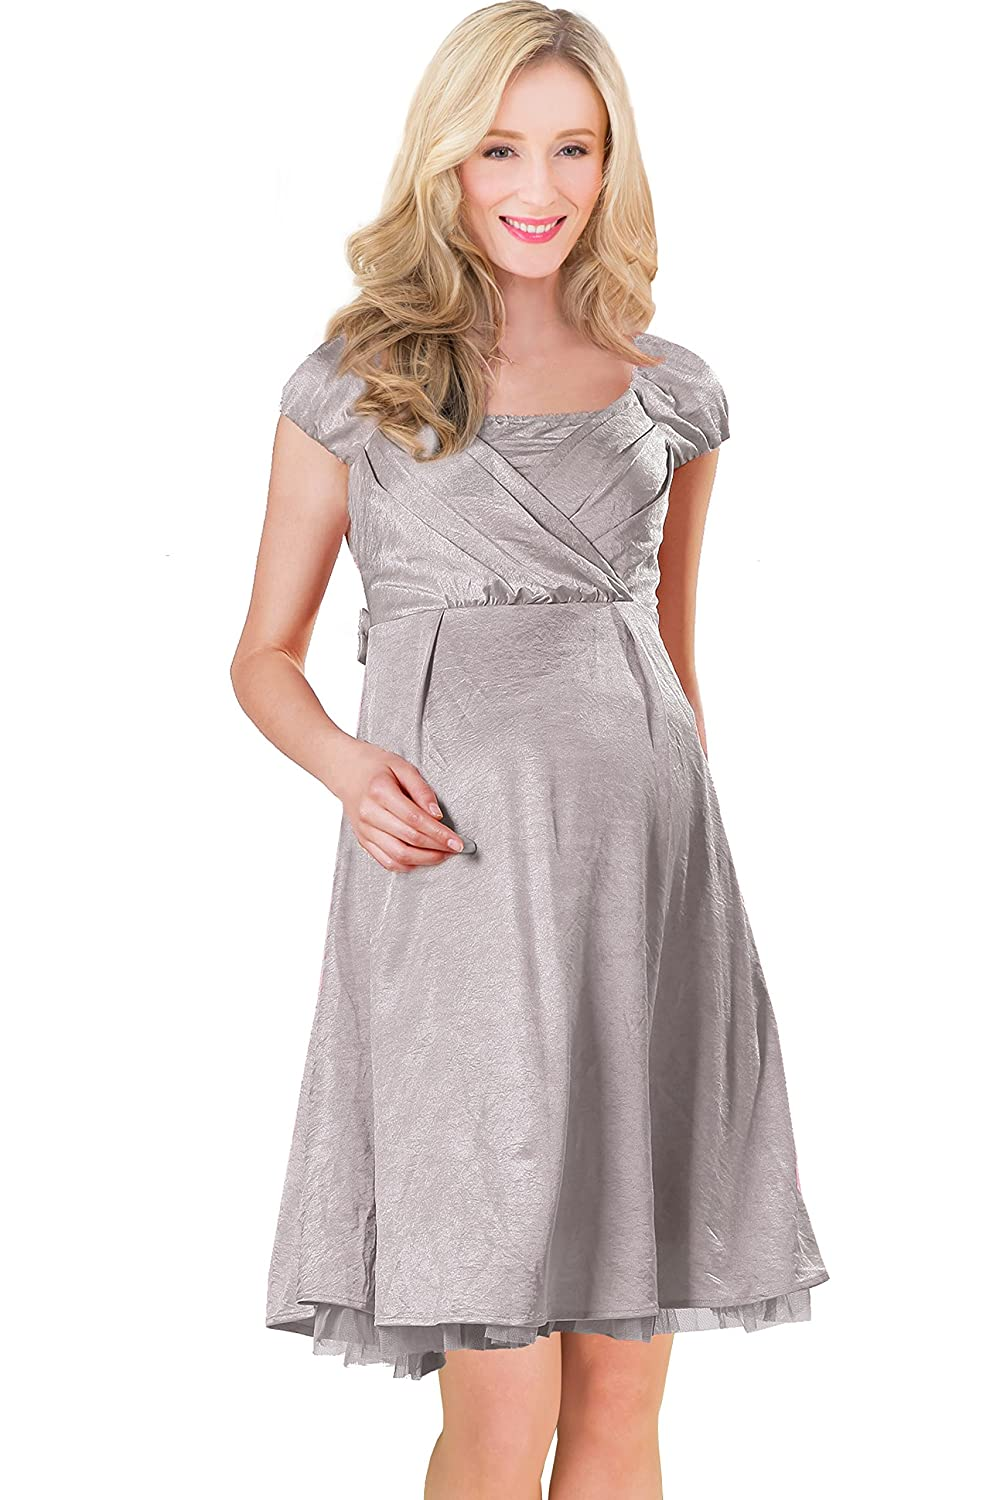 a1544476e6384 [Dress]Polyester95%, Polyurethane5% [Liner]Nylon87%, Polyurethane13% 1.5  centimeters high 35 centimeters wide. Measurements in Inches: S [Bust32-35,  ...